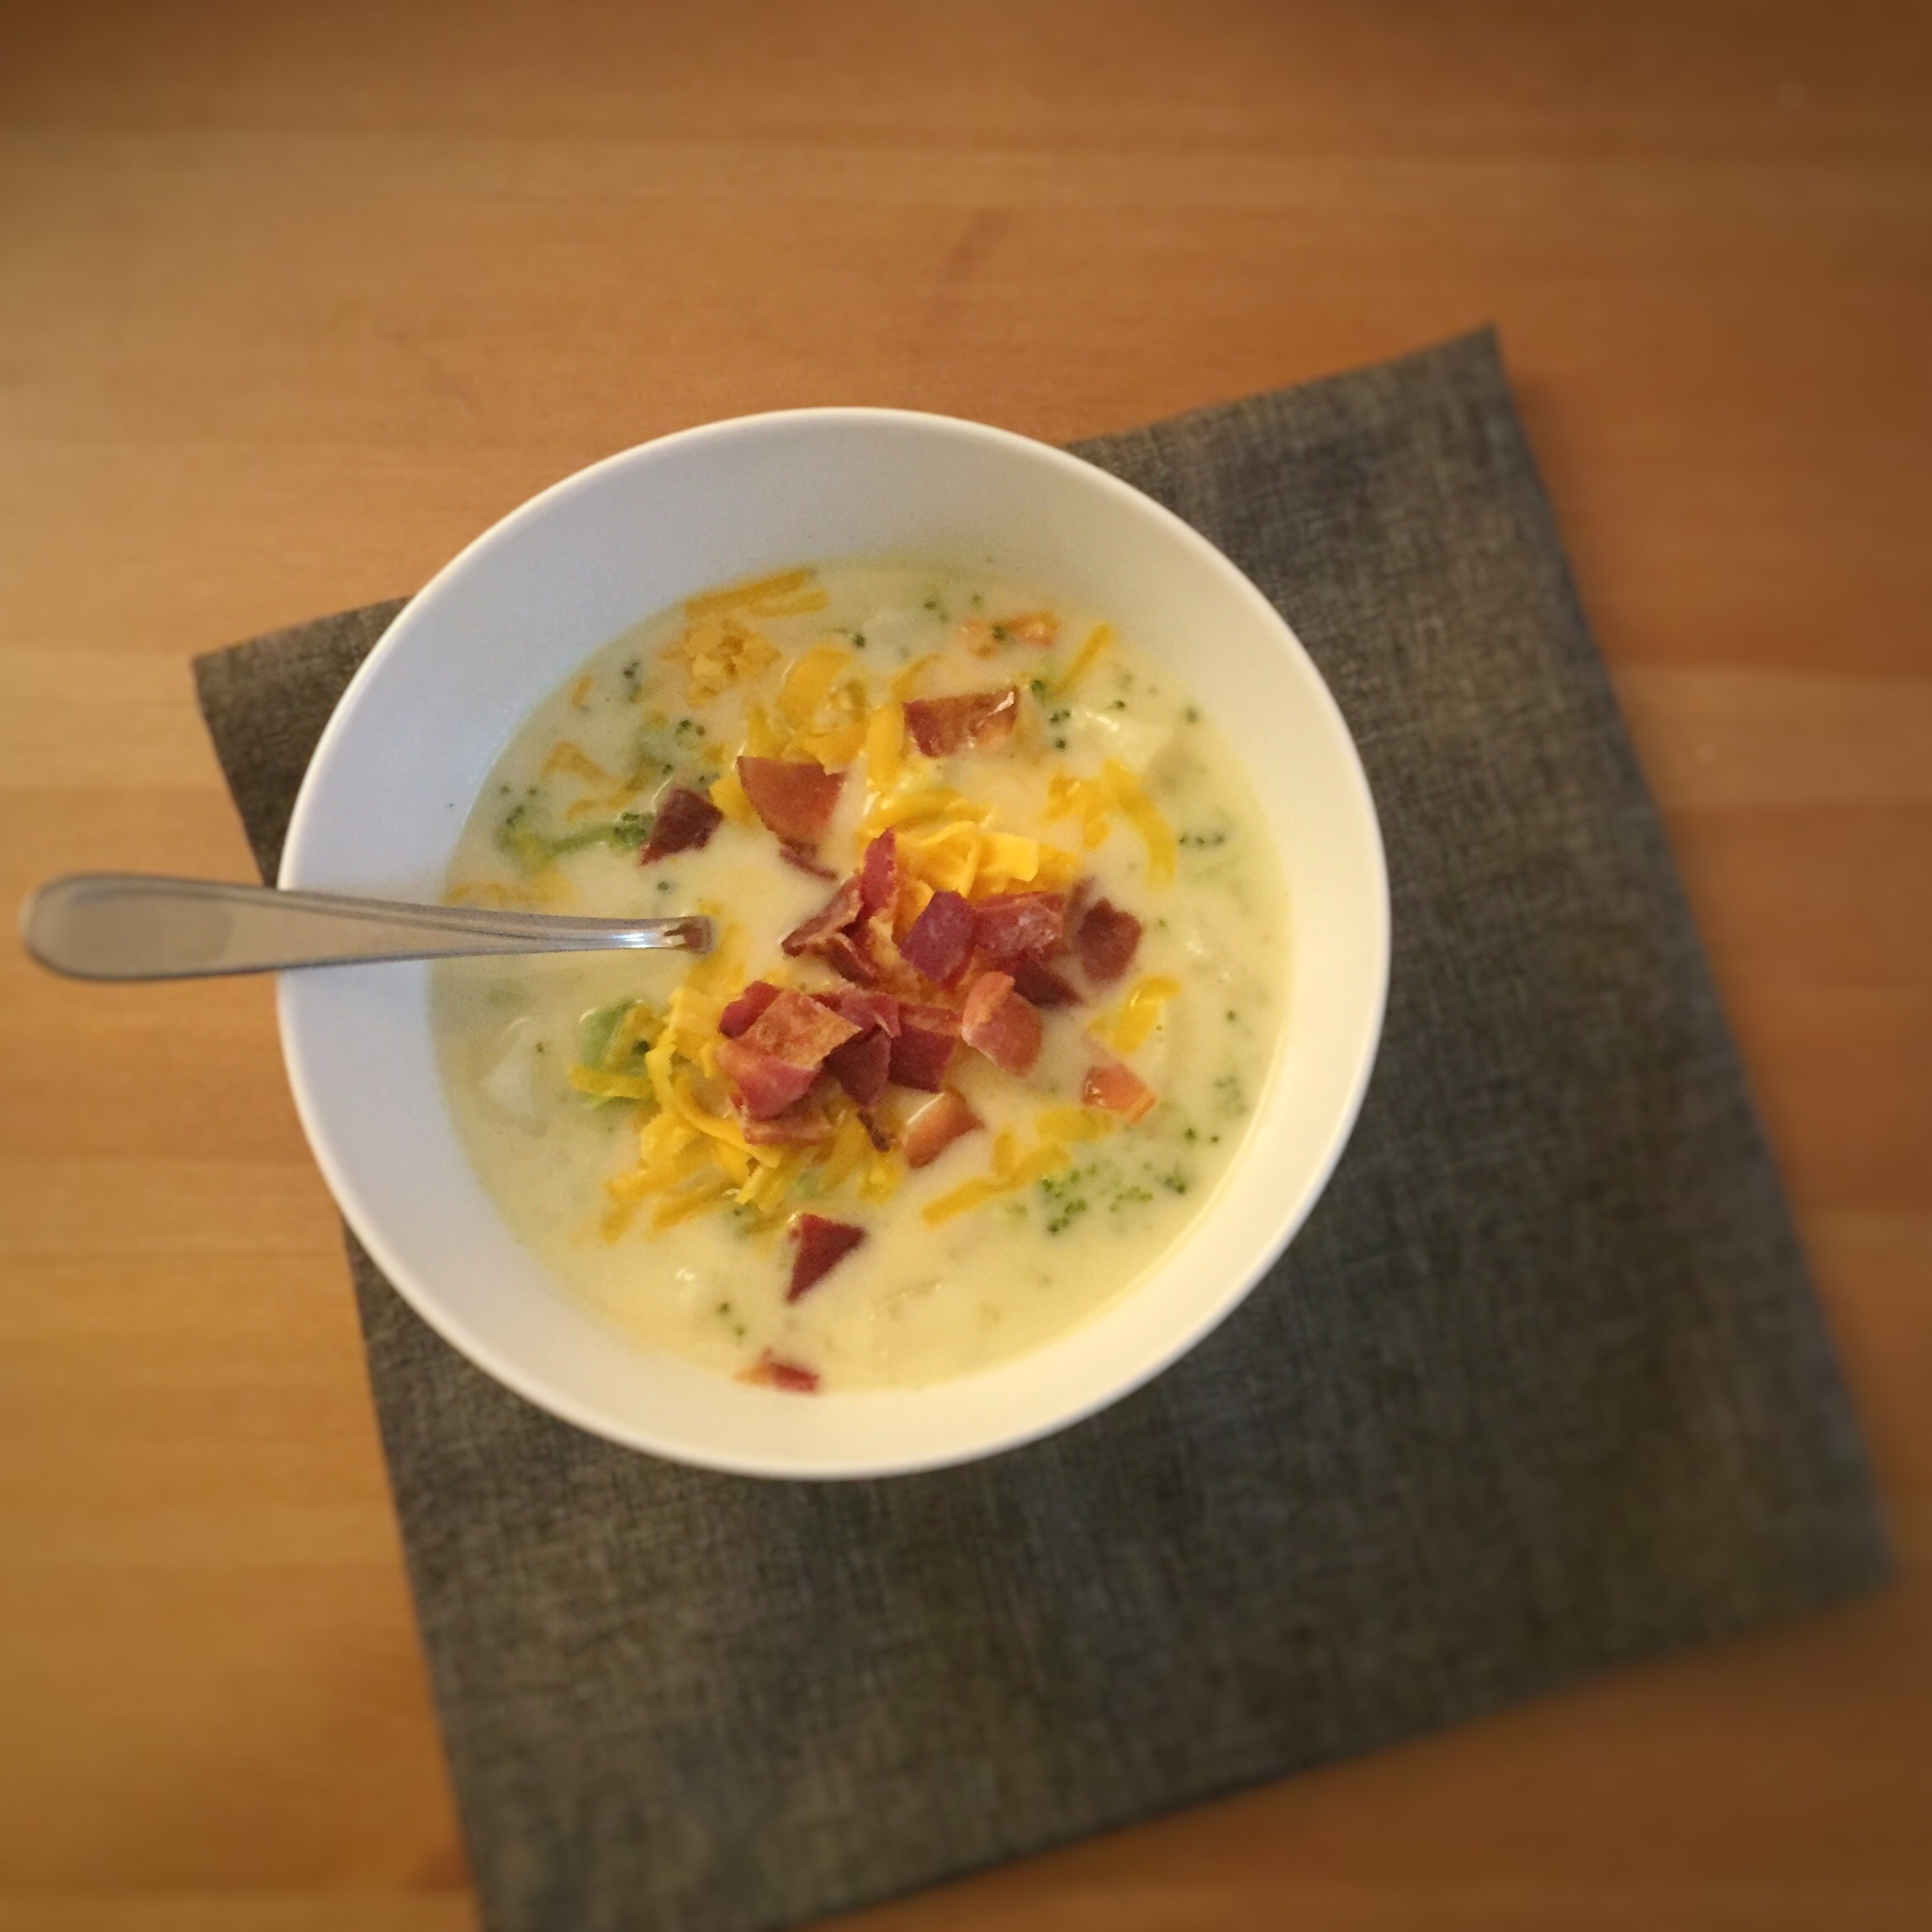 Loaded Broccoli, Potato and Cheese Soup